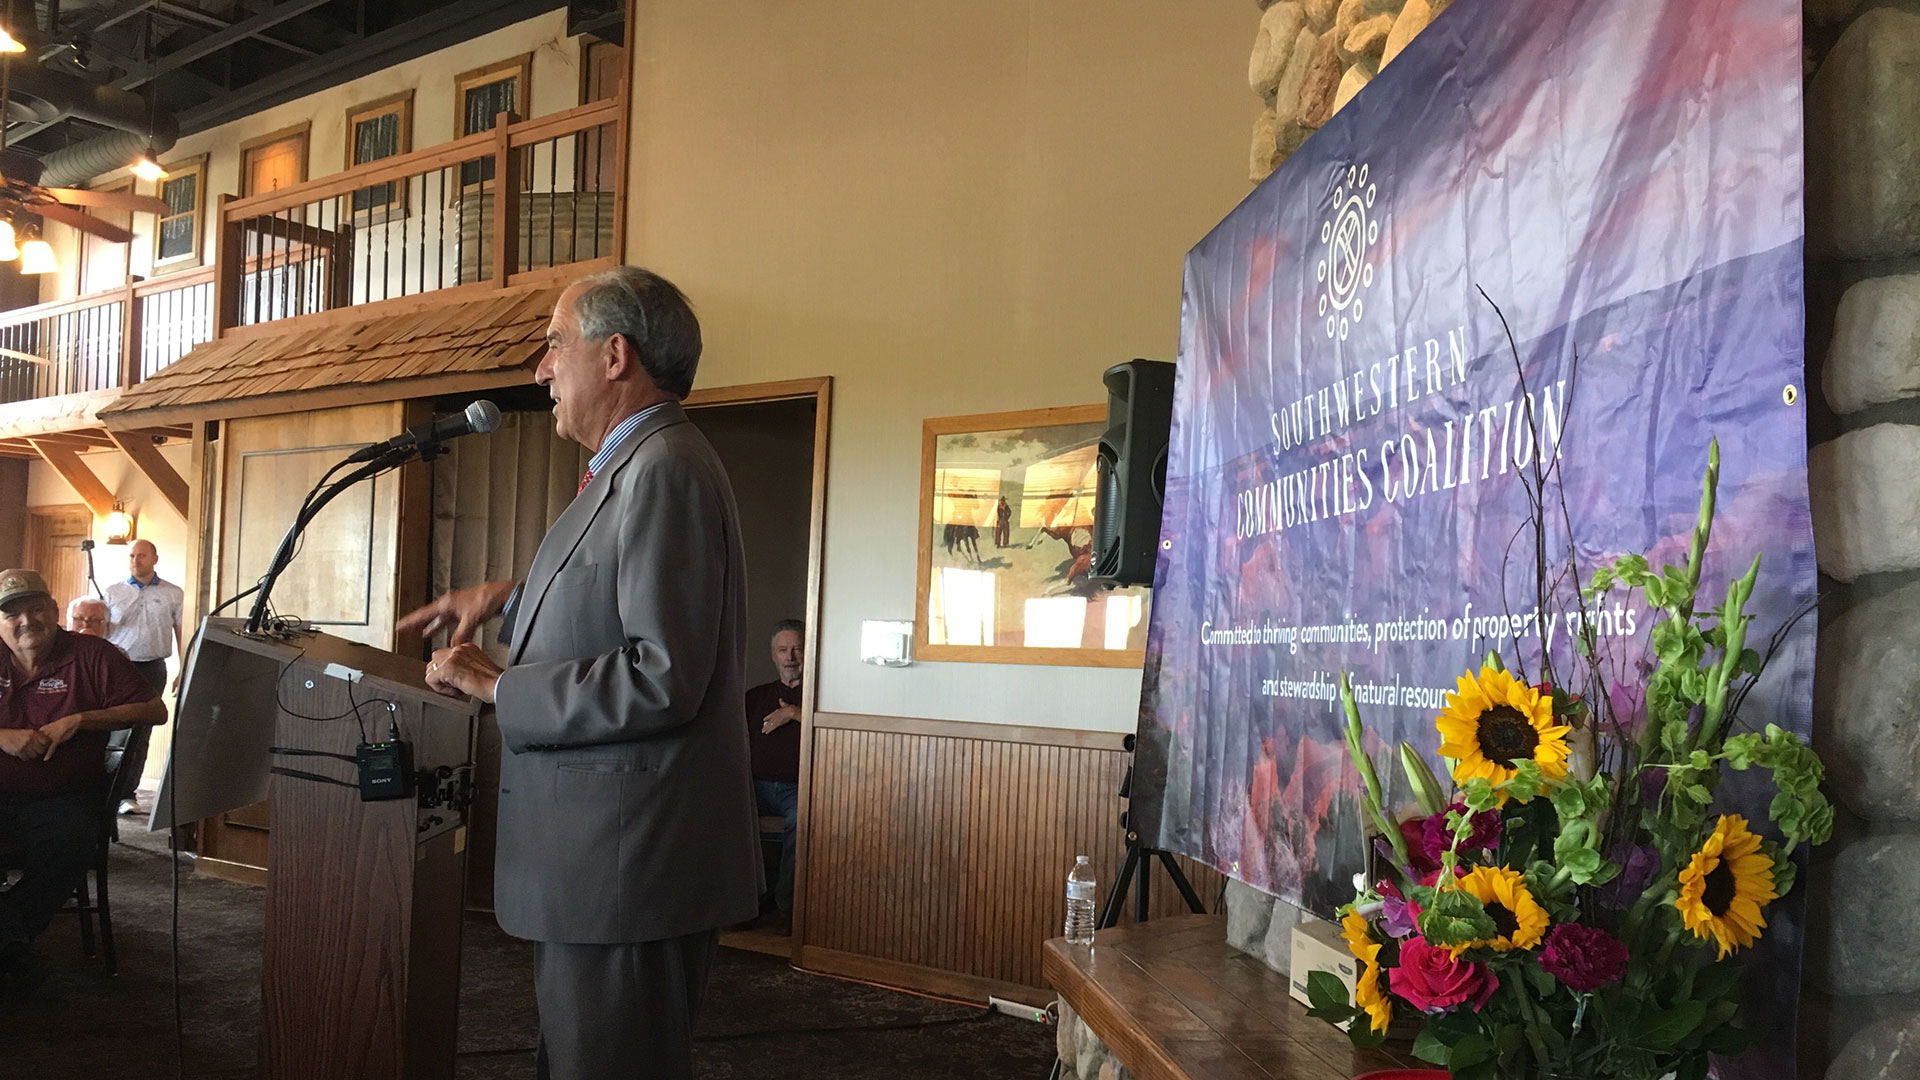 Lanny Davis, the attorney representing El Dorado Holdings, speaks at the launch of the Southwestern Communities Coalition Sept. 18, 2019.